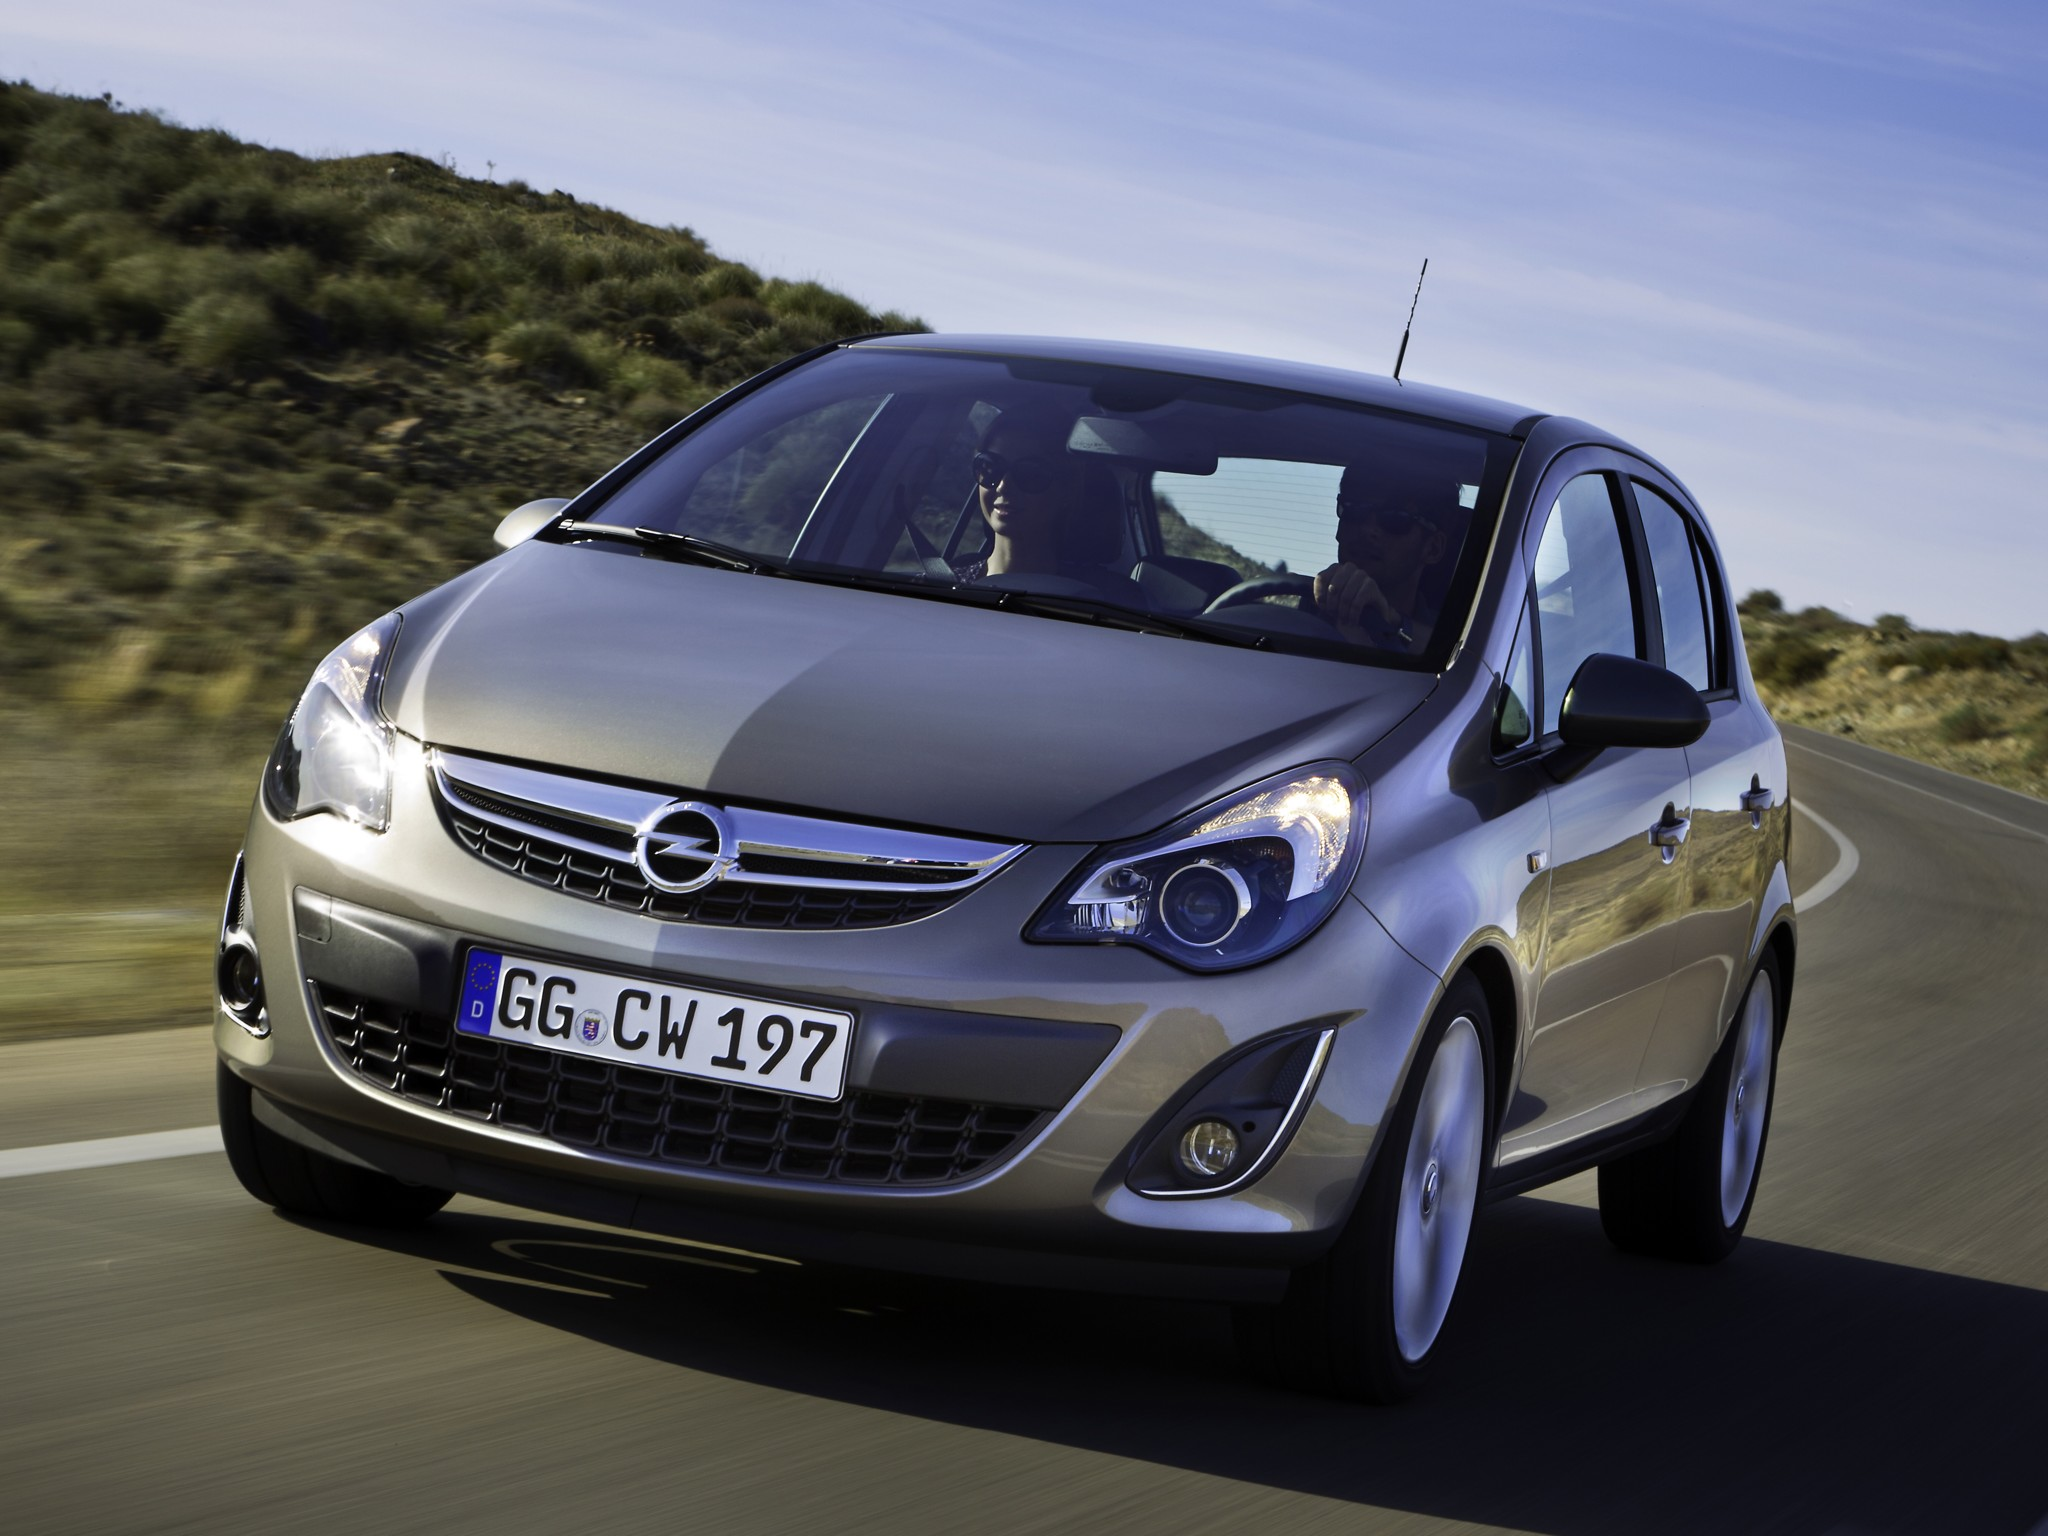 OPEL Corsa 5 Doors specs & photos - 2010, 2011, 2012, 2013, 2014, 2015, 2016, 2017, 2018, 2019 ...